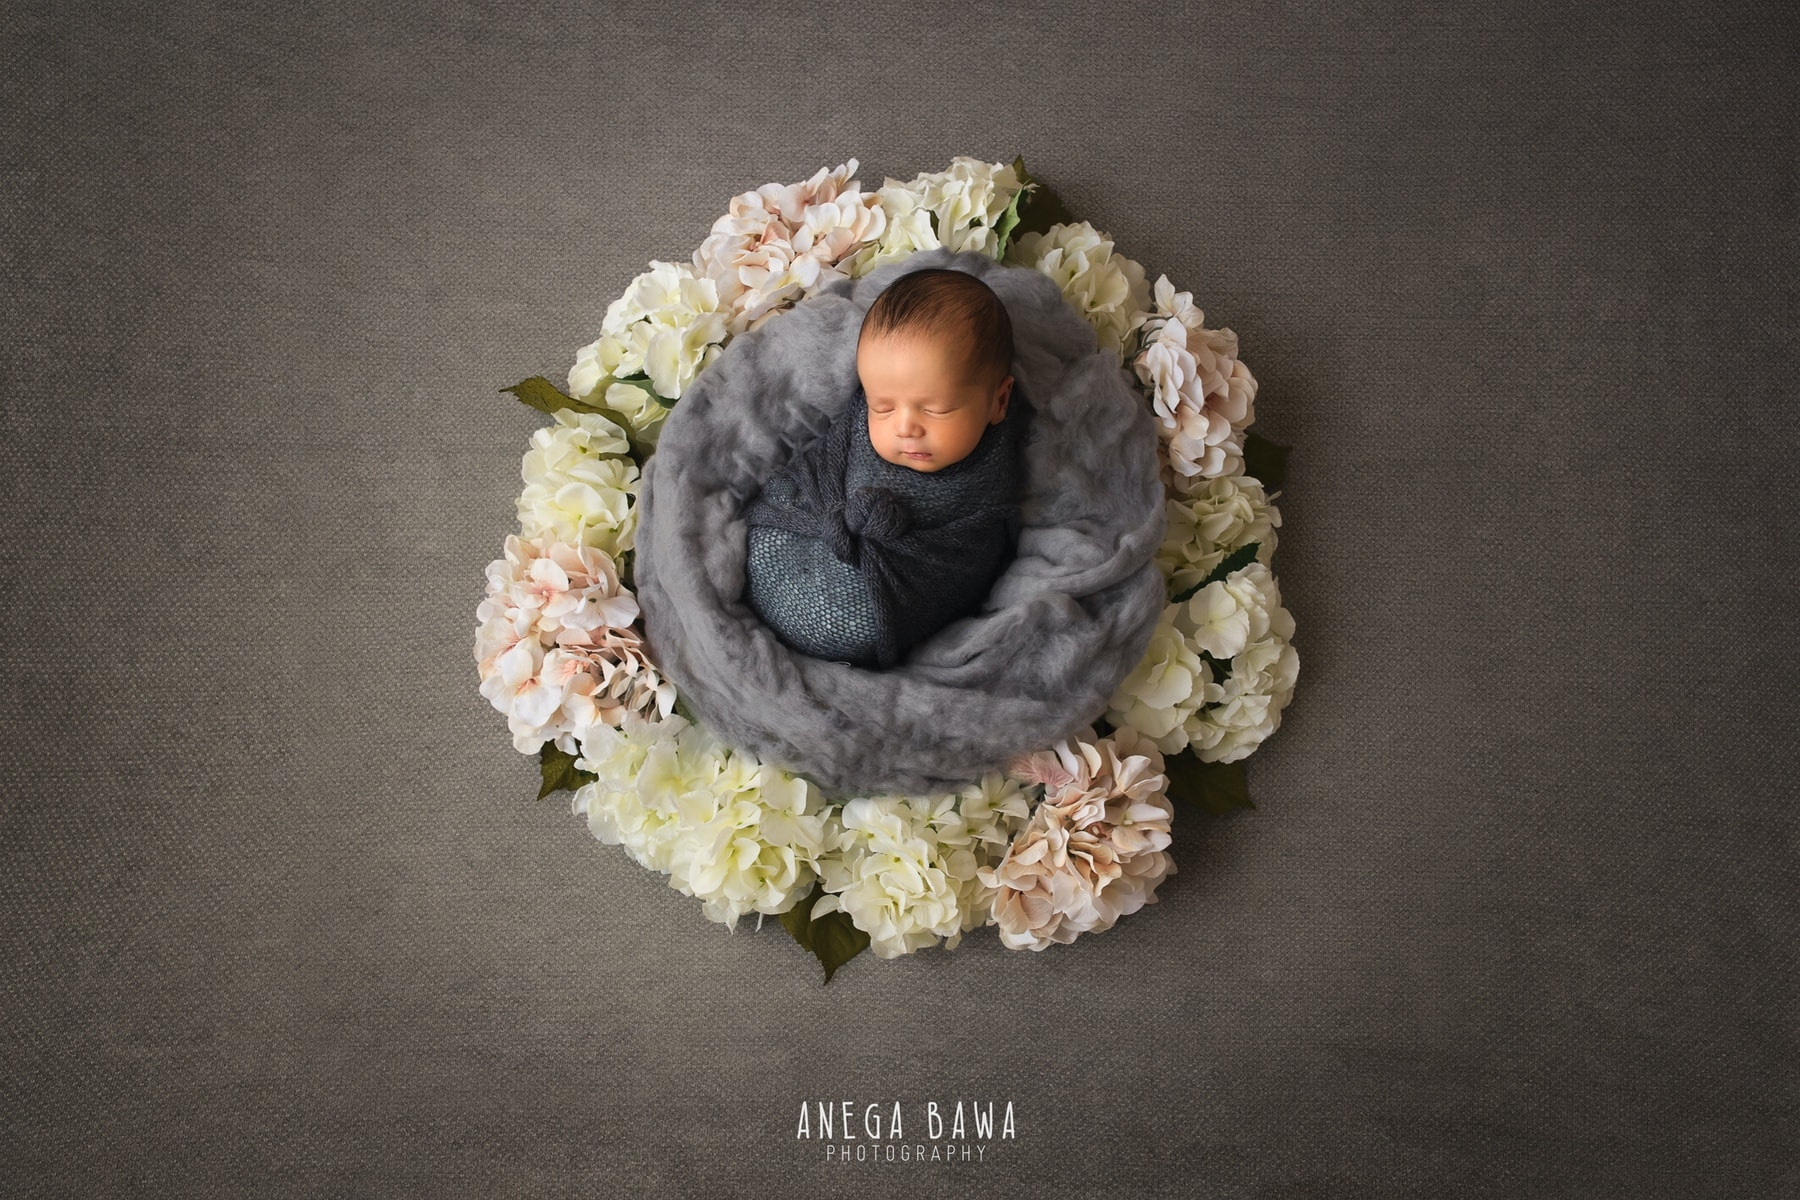 grey floral newborn photography delhi 11 days baby boy photoshoot gurgaon anega bawa